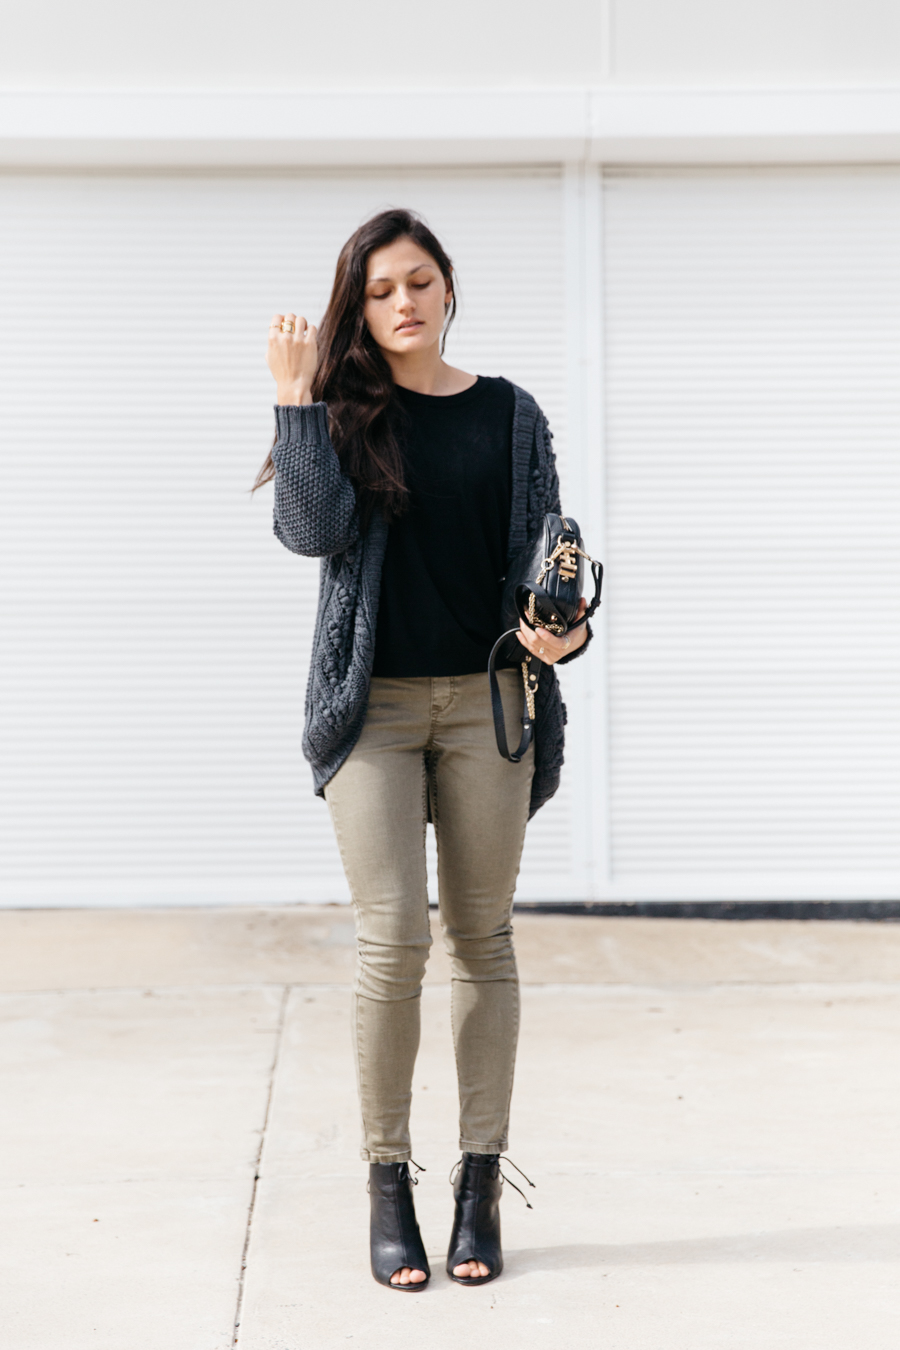 Khaki jeans outfit.